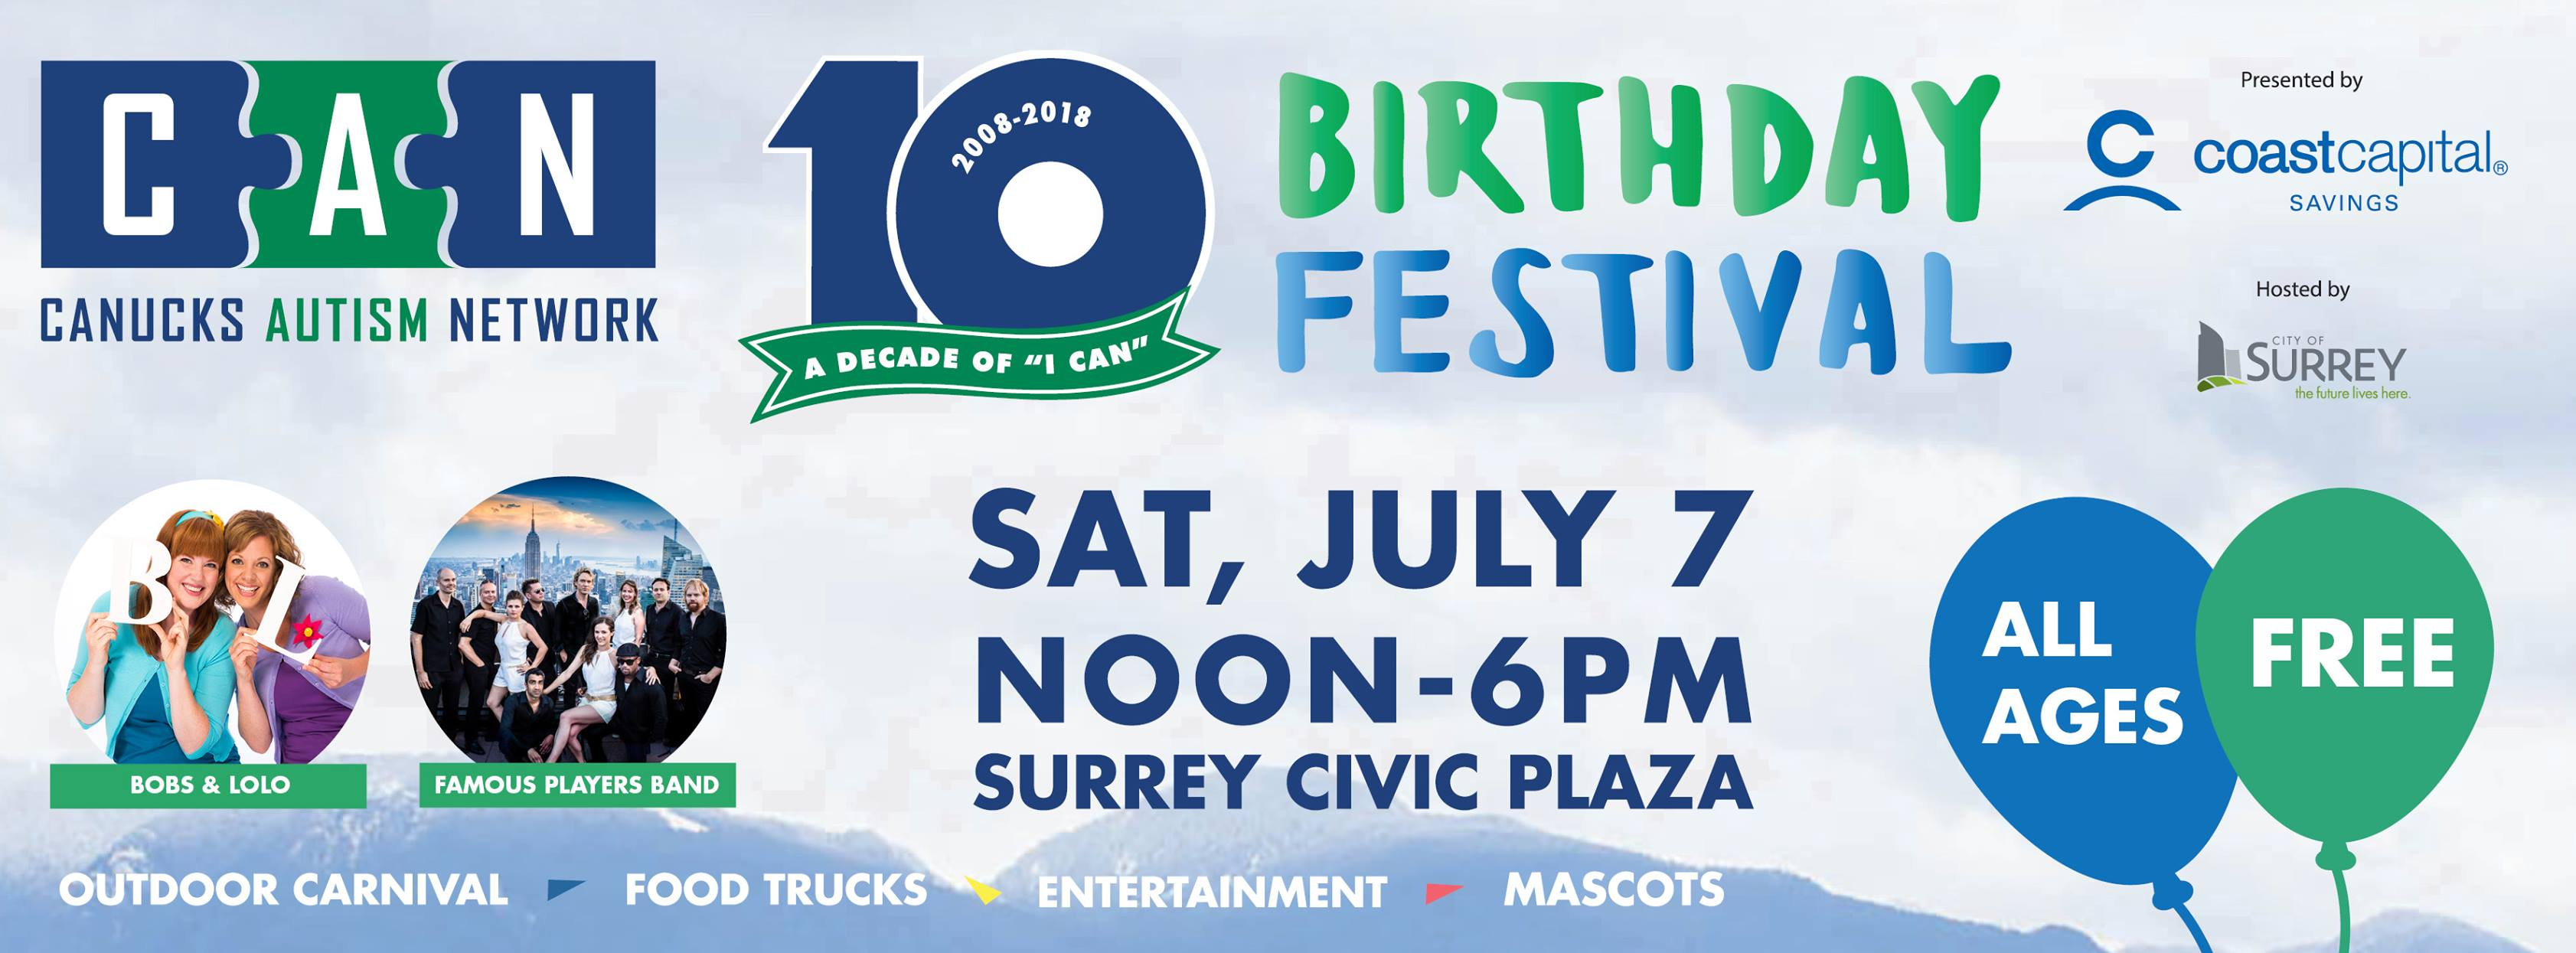 A graphic promoting the CAN Birthday Festival on Saturday, July 7 at Surrey Civic Plaza